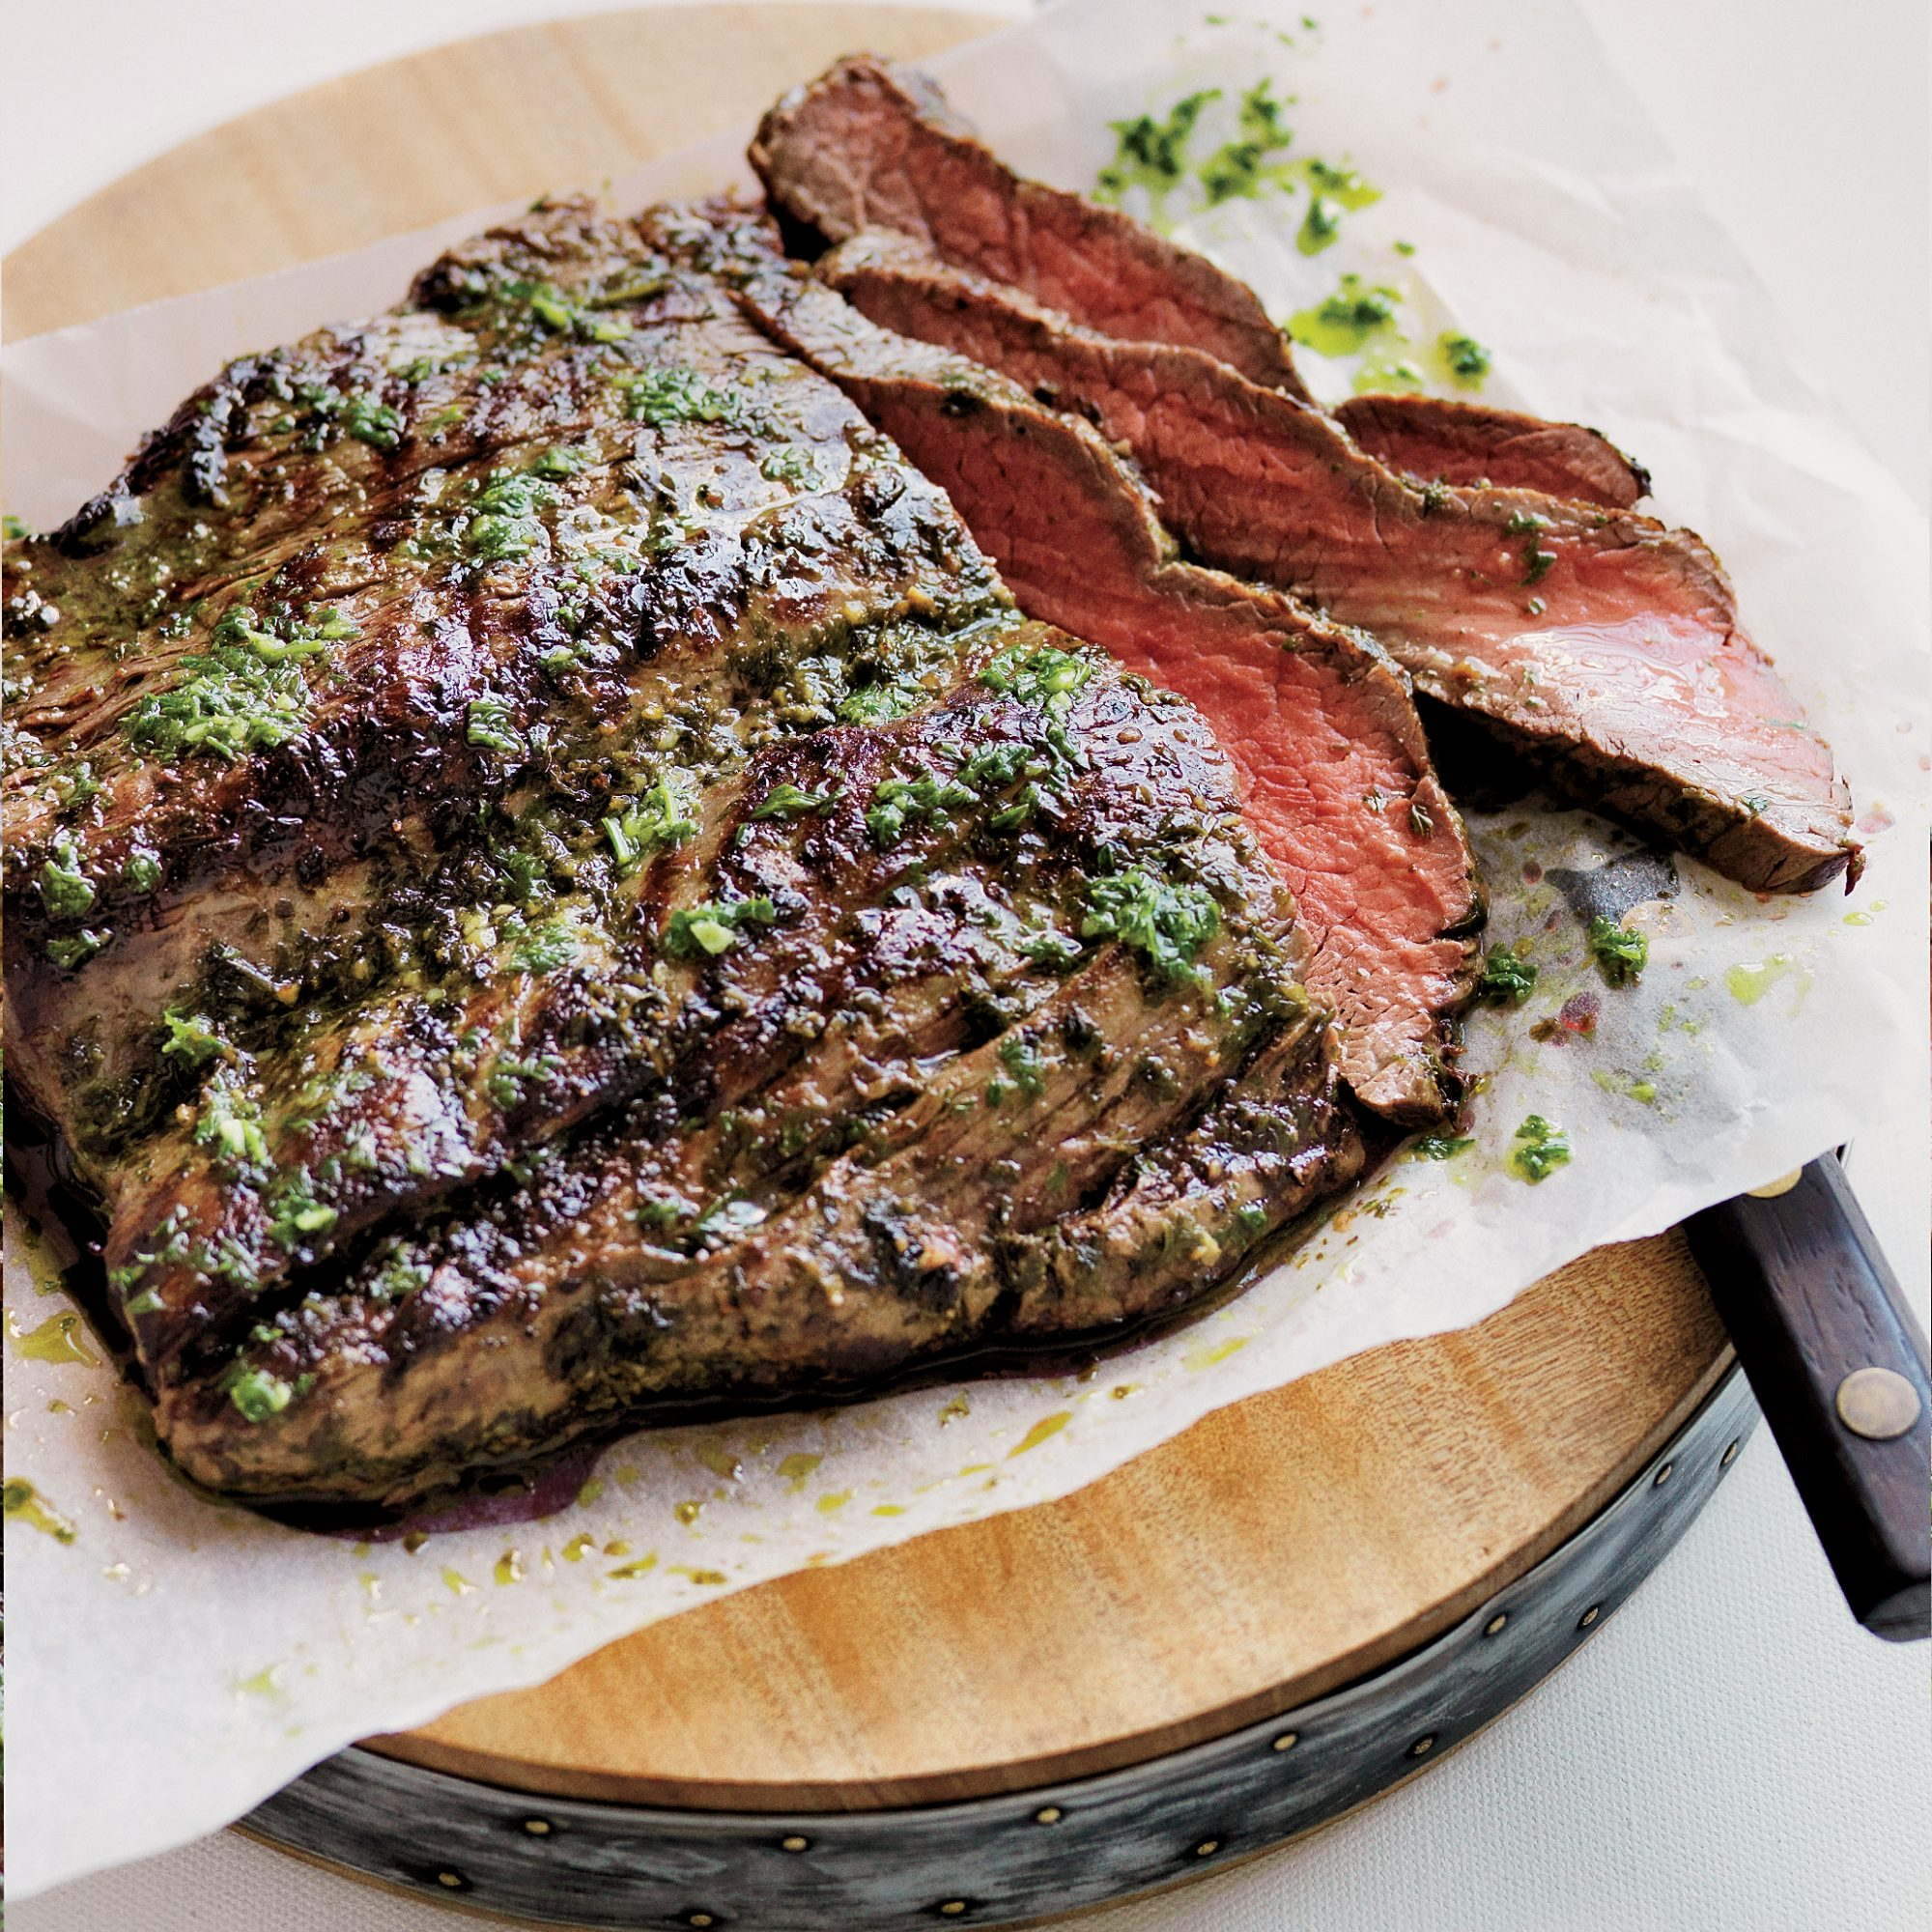 Churrasco with Chimichurri